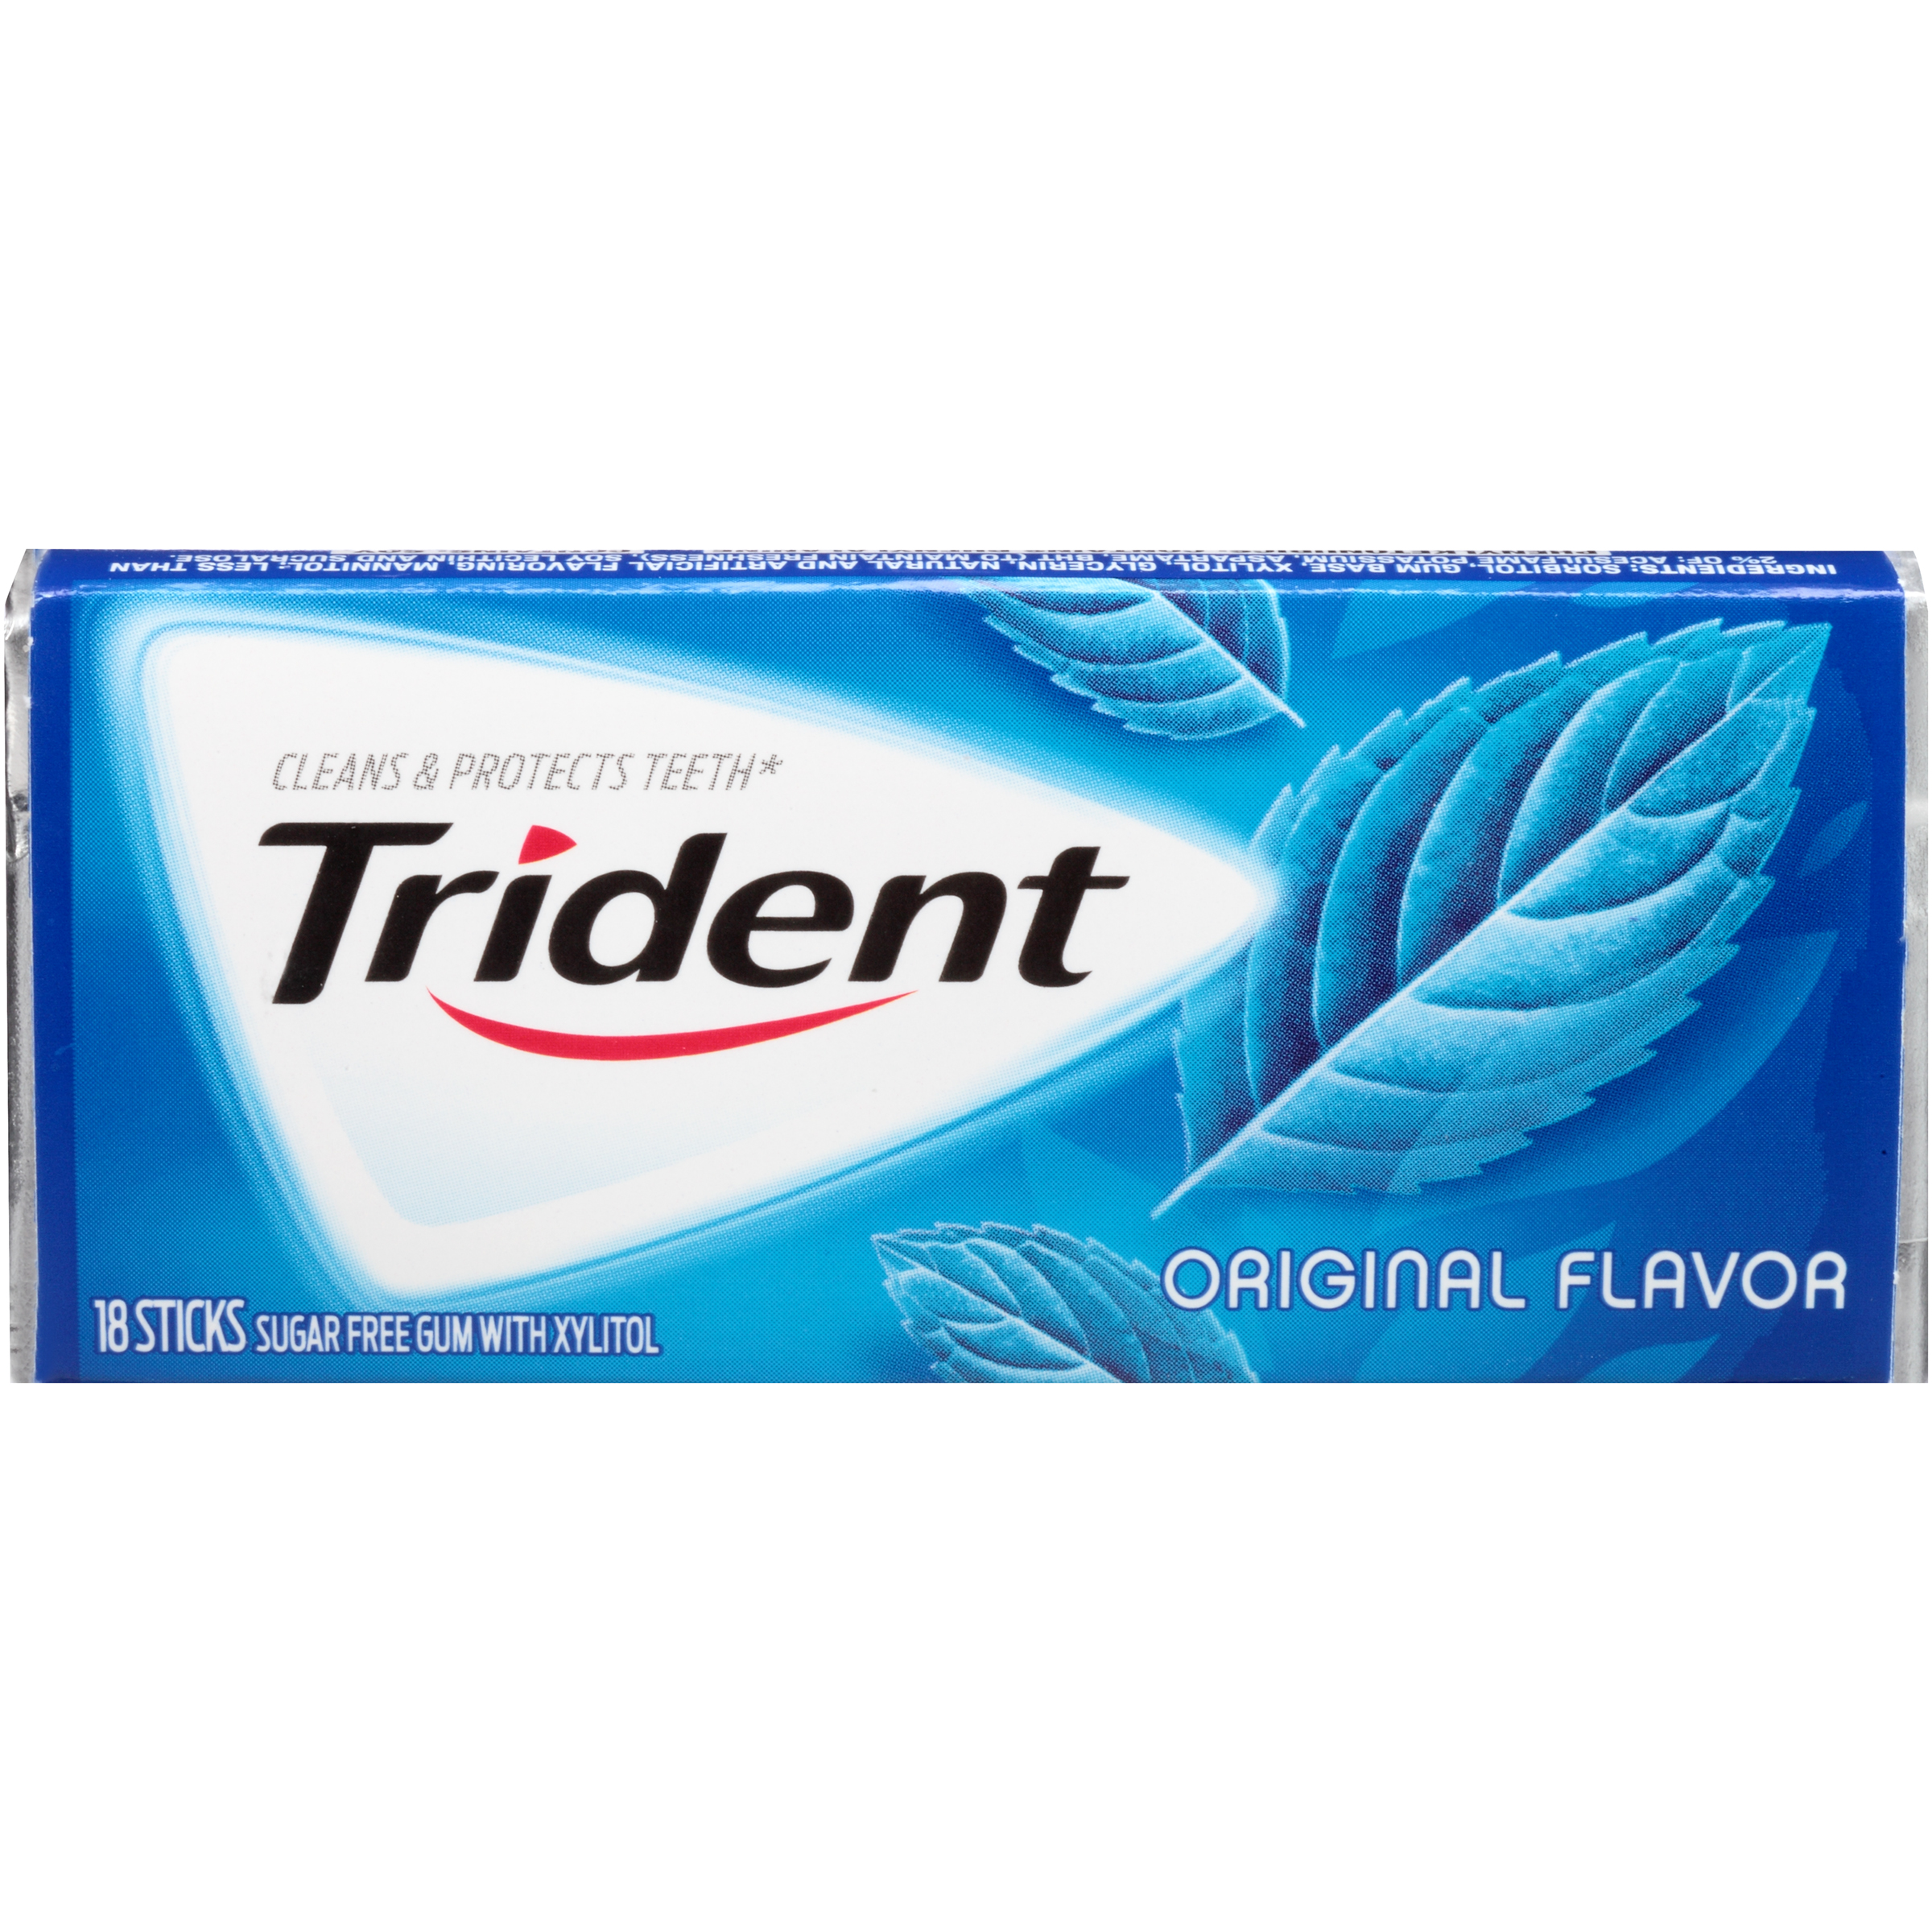 Trident Sugarless Chewing Gum Val-U-Pak Original - 12 X 18 Stick Pack